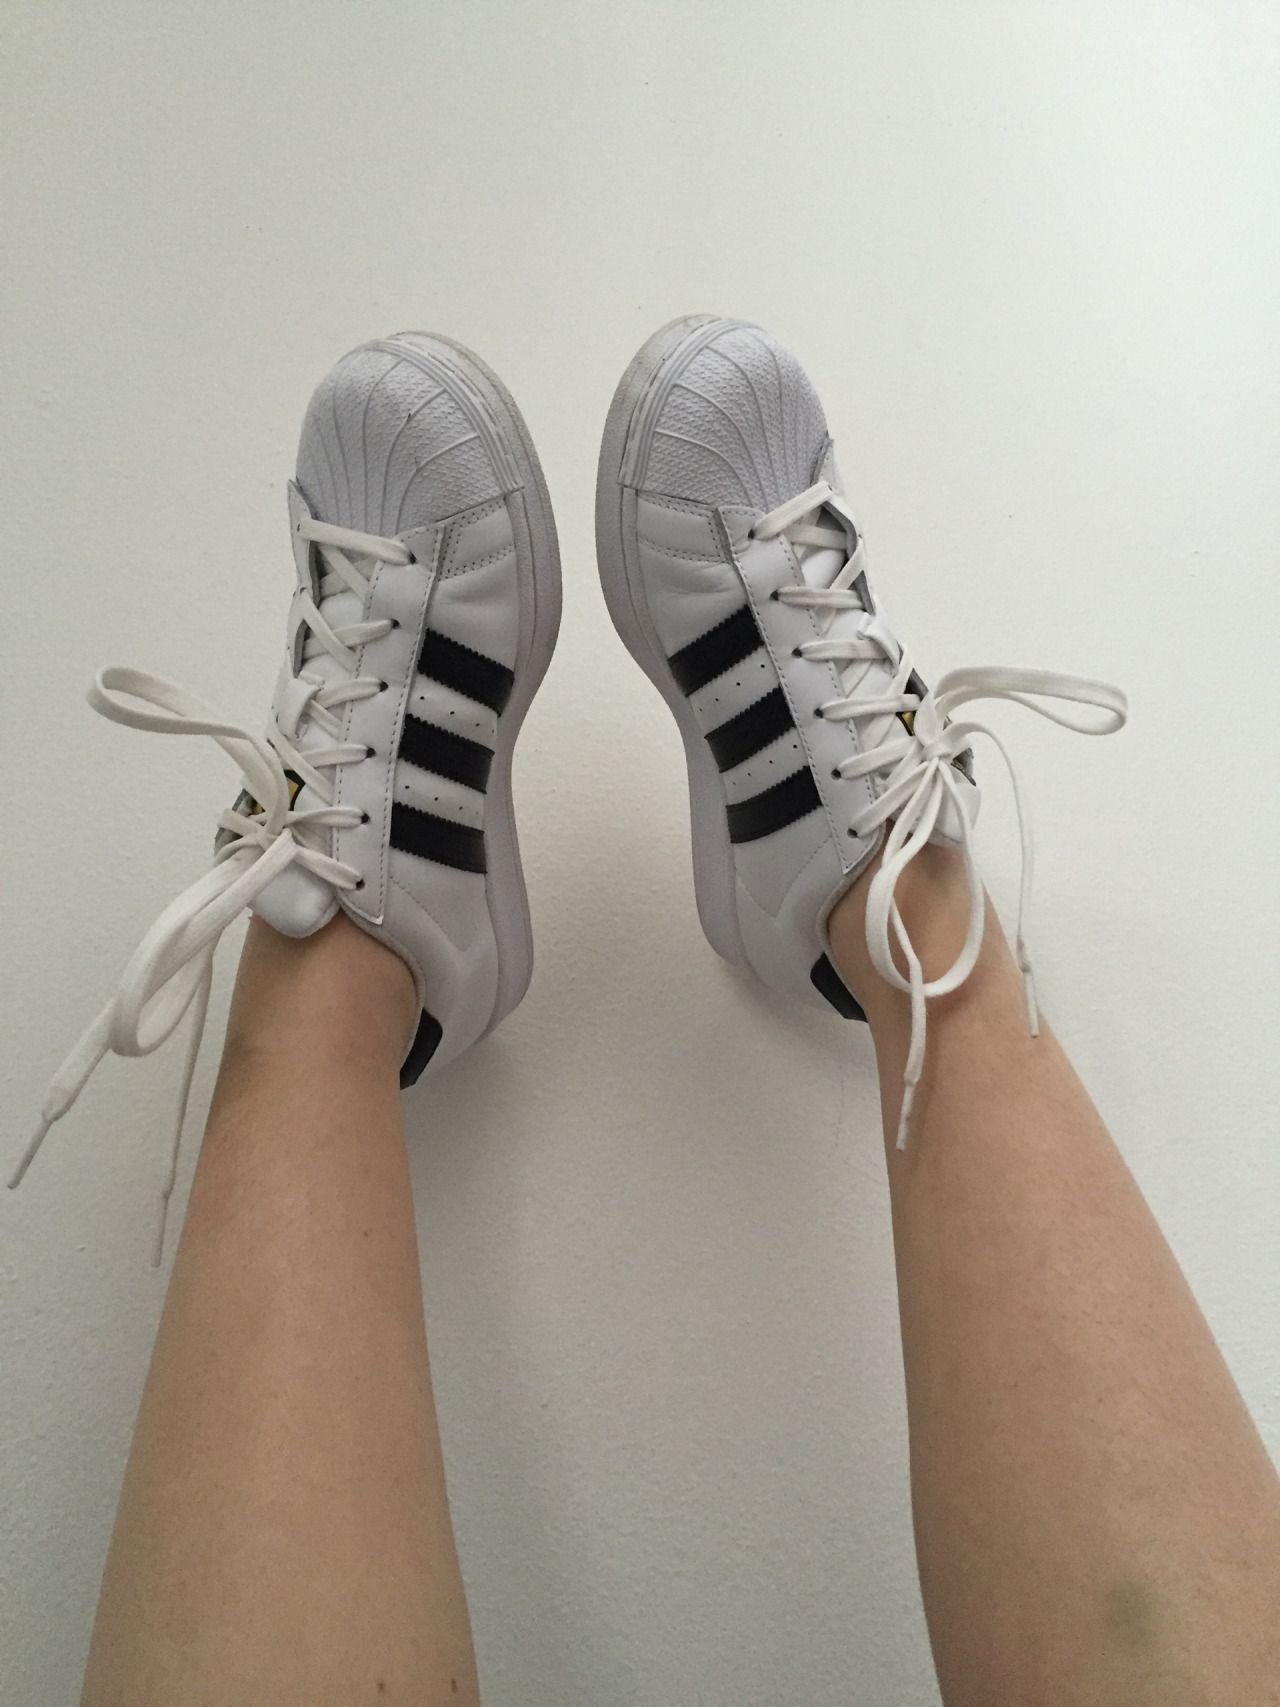 new arrival a9cdd 55f99 Shoes adidas sneakers tumblr adidas shoes black and white adidas nmd  burgundy… love the material Original Adidas Superstar Sneaker Throwback  Superstar ...